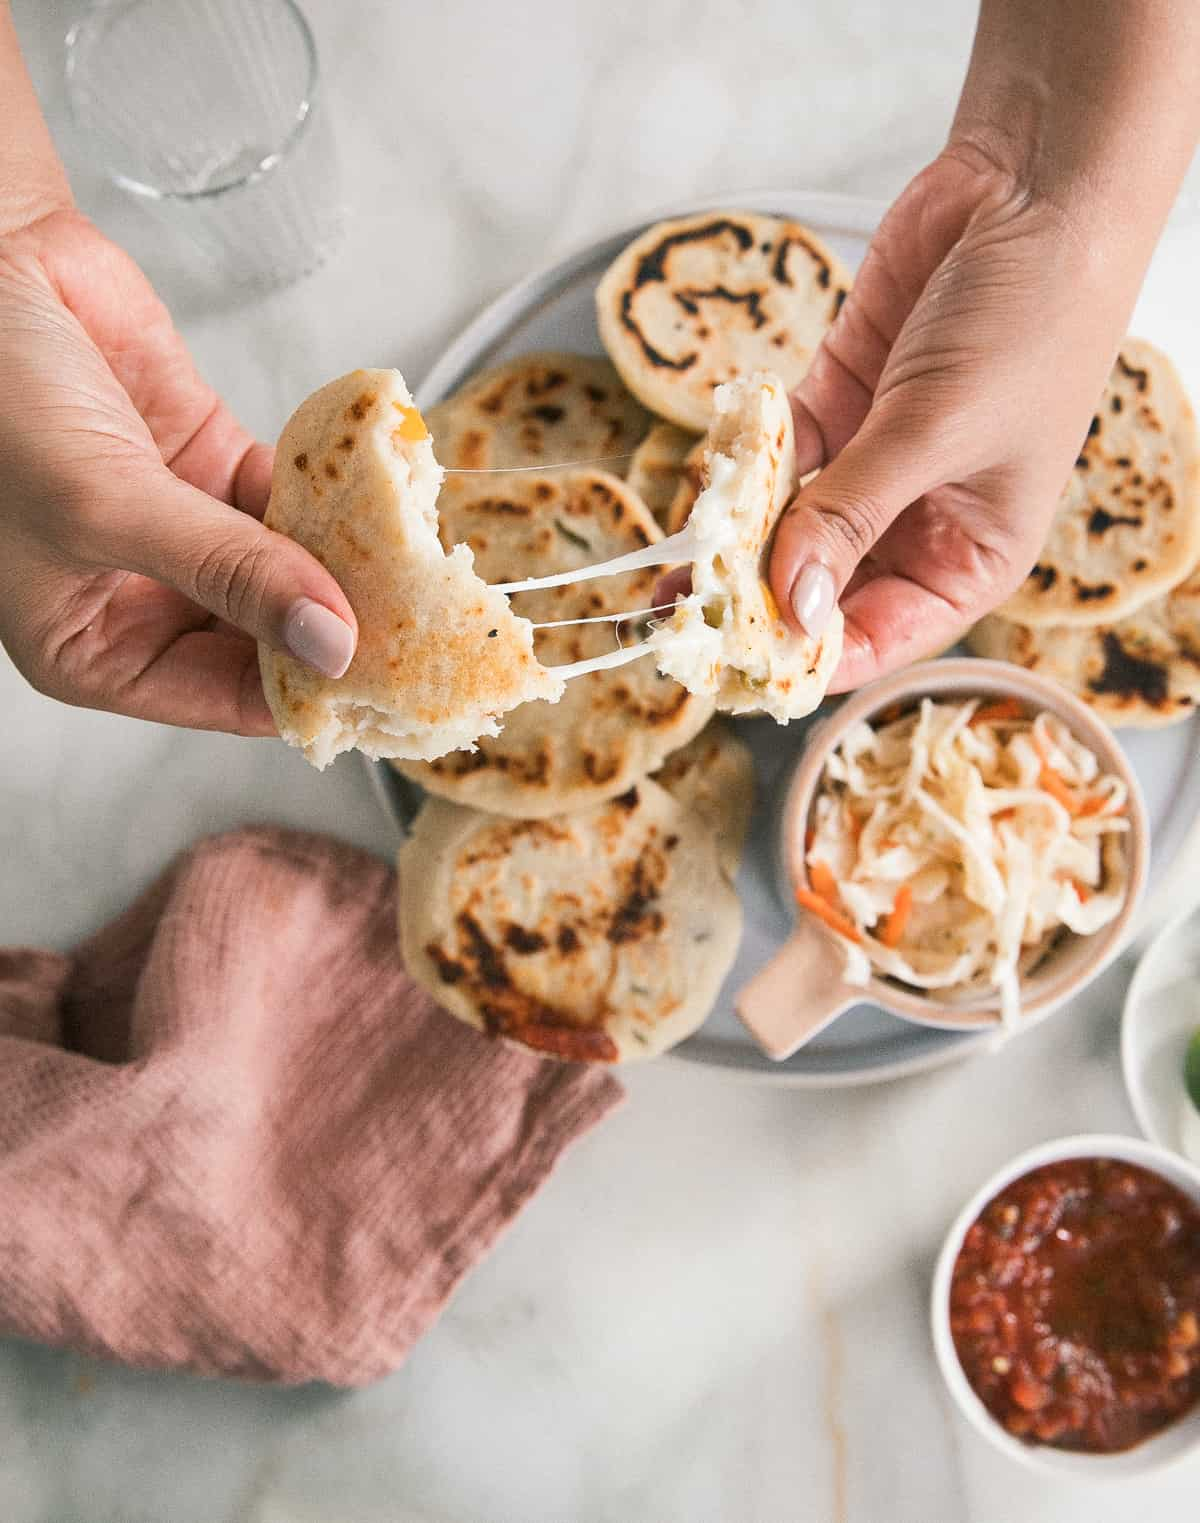 Pupusa being torn apart with cheese pull